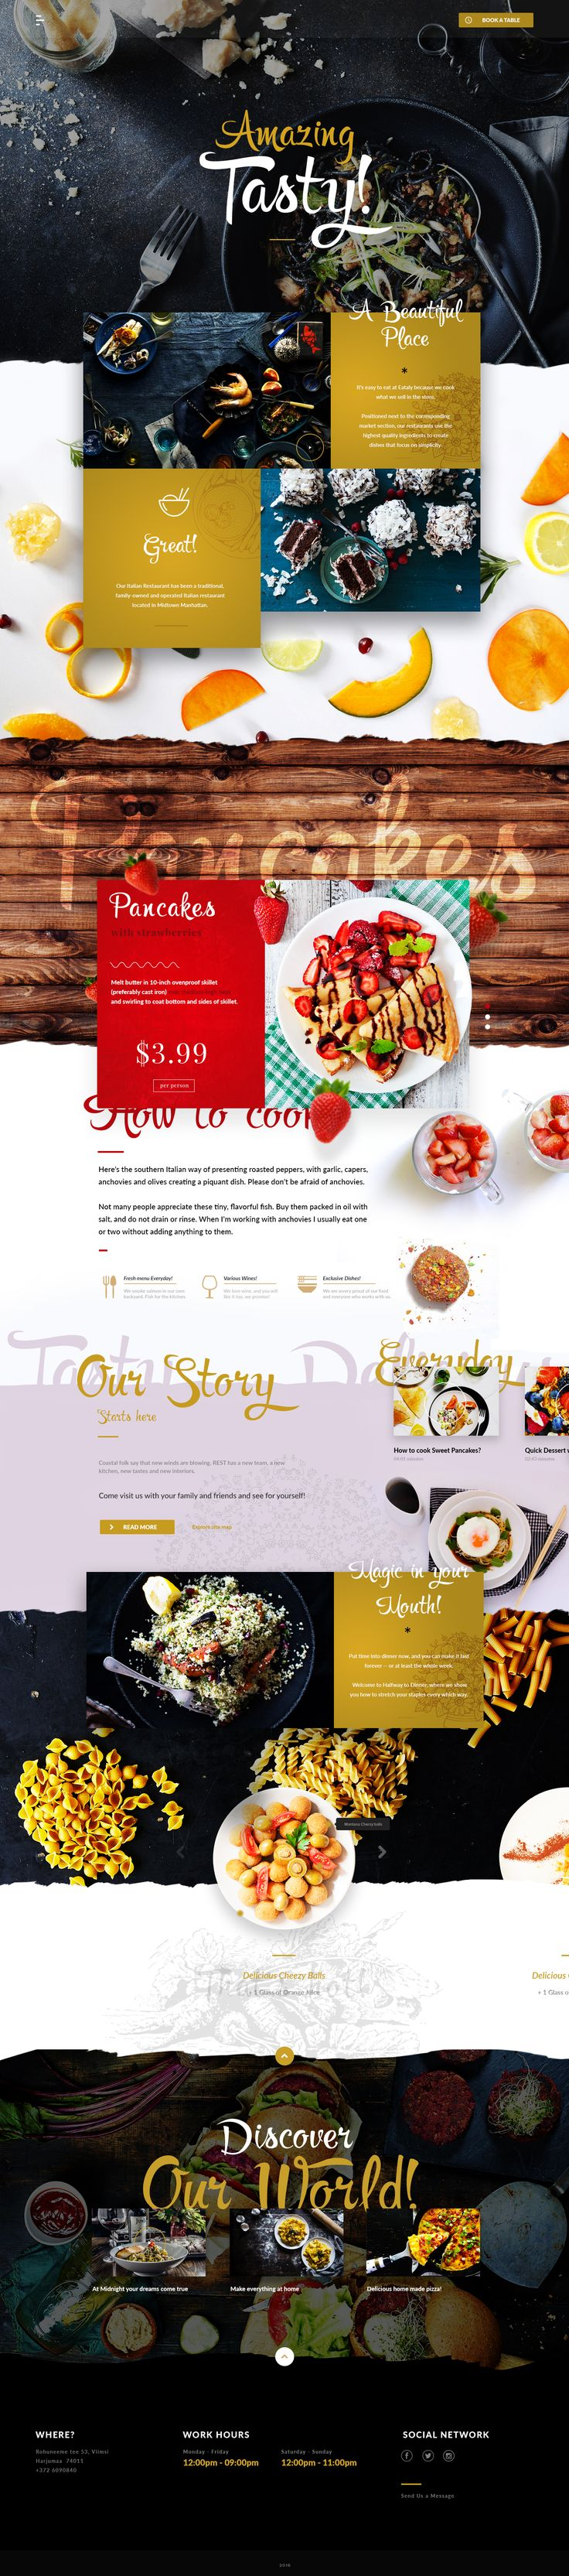 Food Restaurant 2 by Vitali Zakharoff #food #restaurant #web #webdesign #website